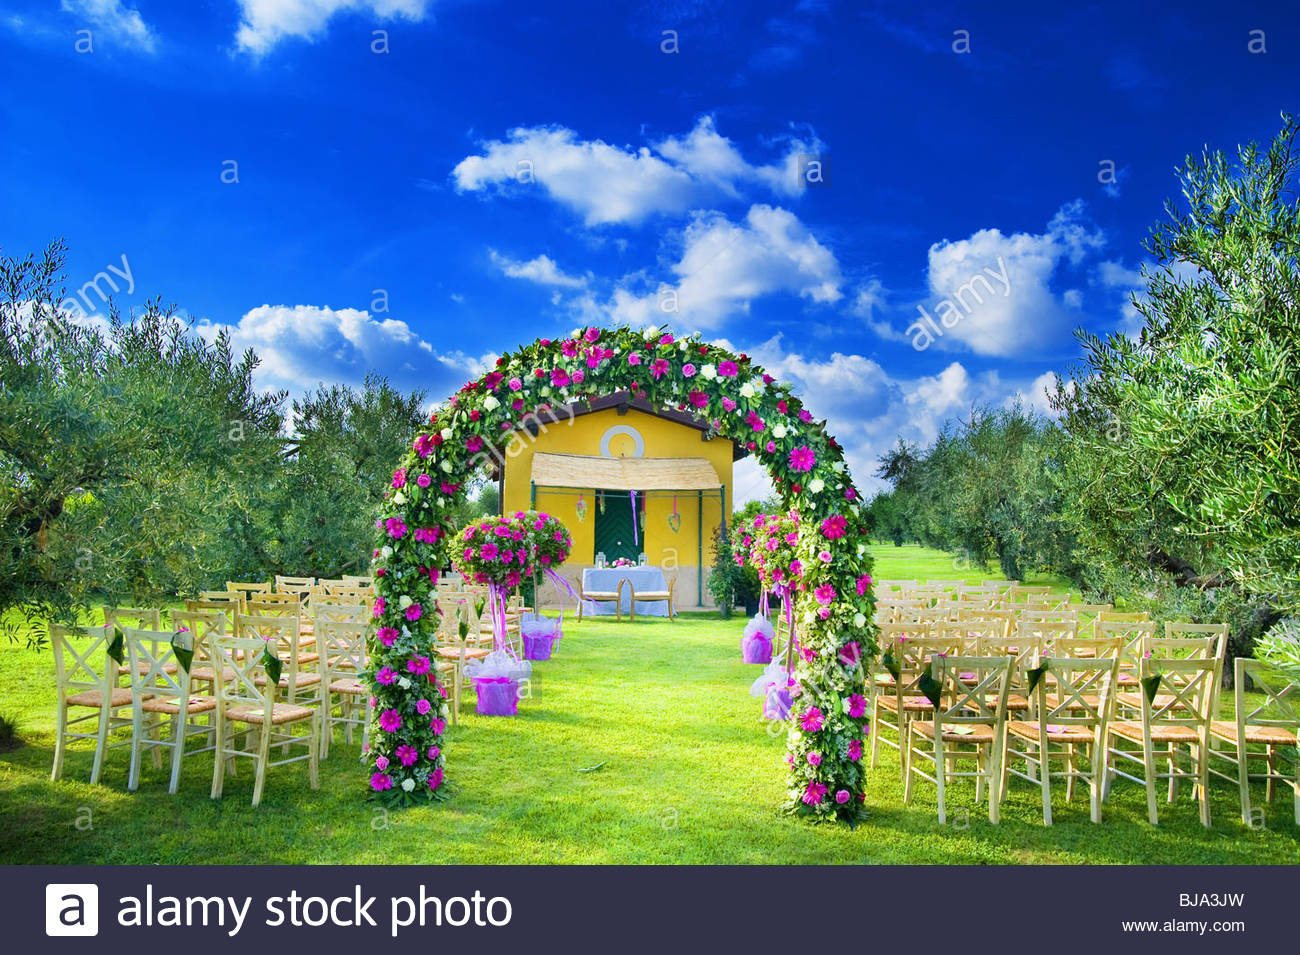 The wedding venue with a flower arch - Stock Image